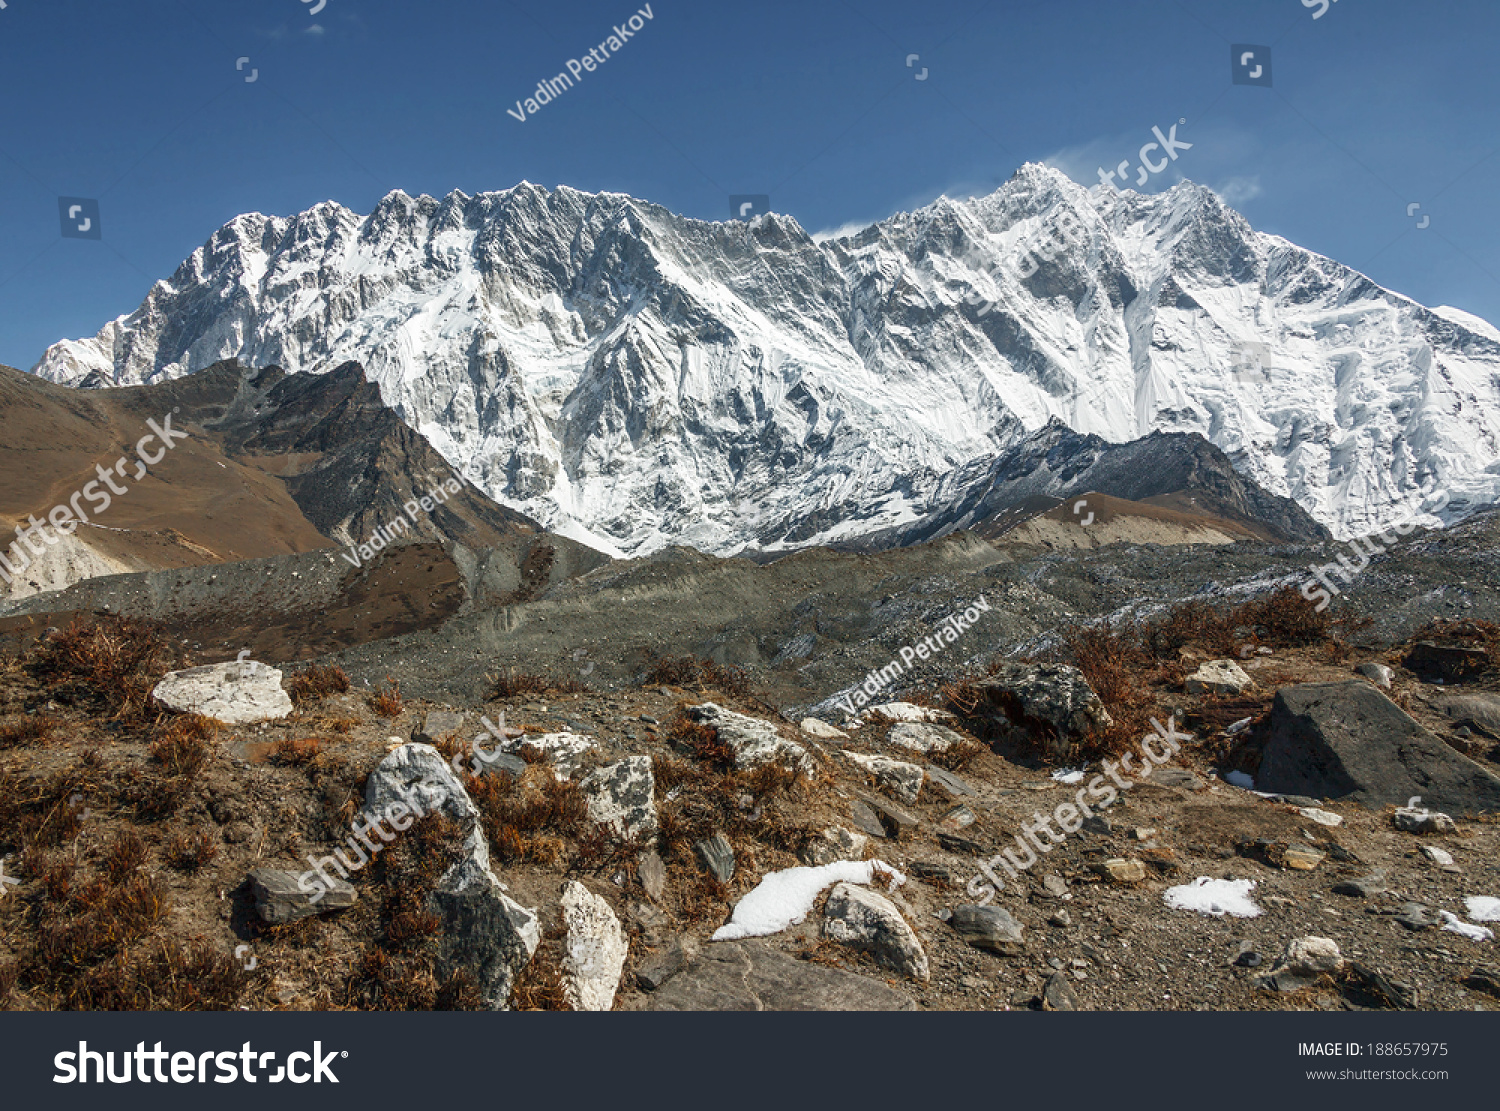 lhotse and peak Lhotse is the fourth highest mountain in the world at 8,516 metres (27,940 ft),  after mount everest, k2, and kangchenjunga part of the everest massif, lhotse  is connected to the latter peak via the.